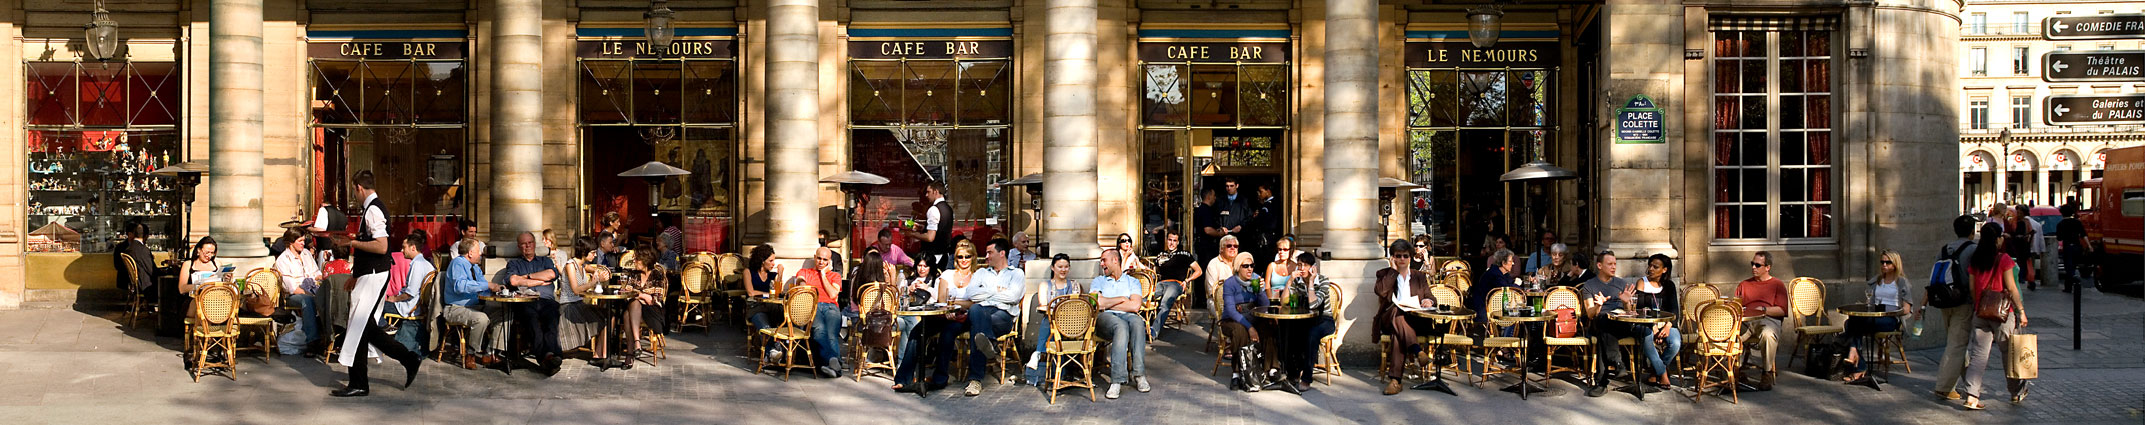 Place Colette, Paris, 2006